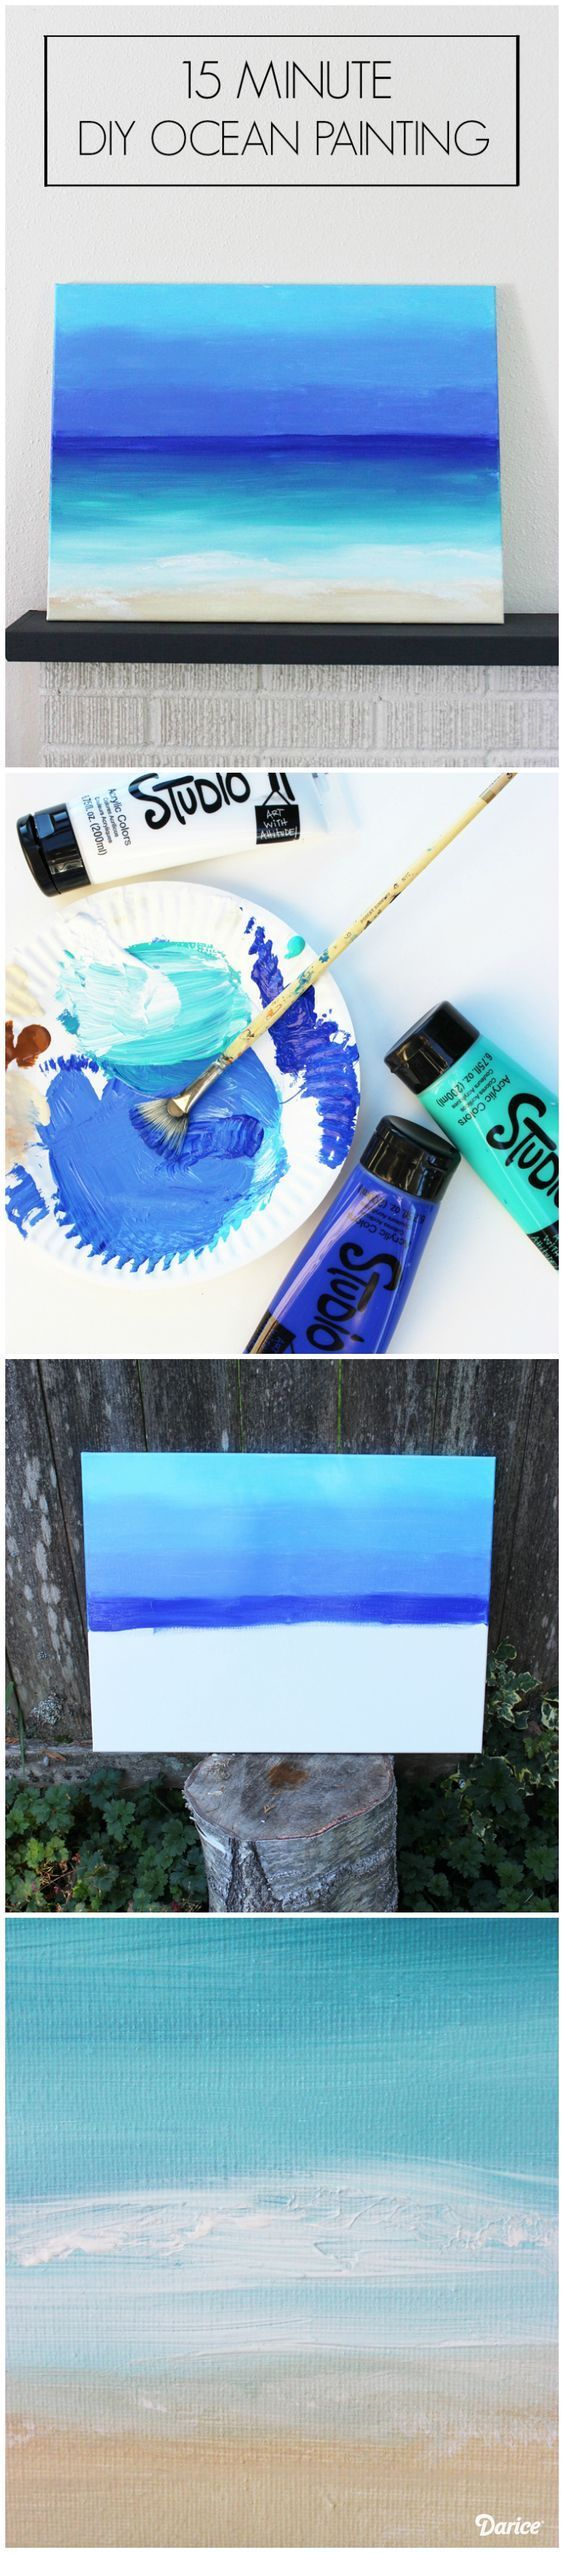 diy painting 15 minute ocean scene darice - Fun Pictures To Paint